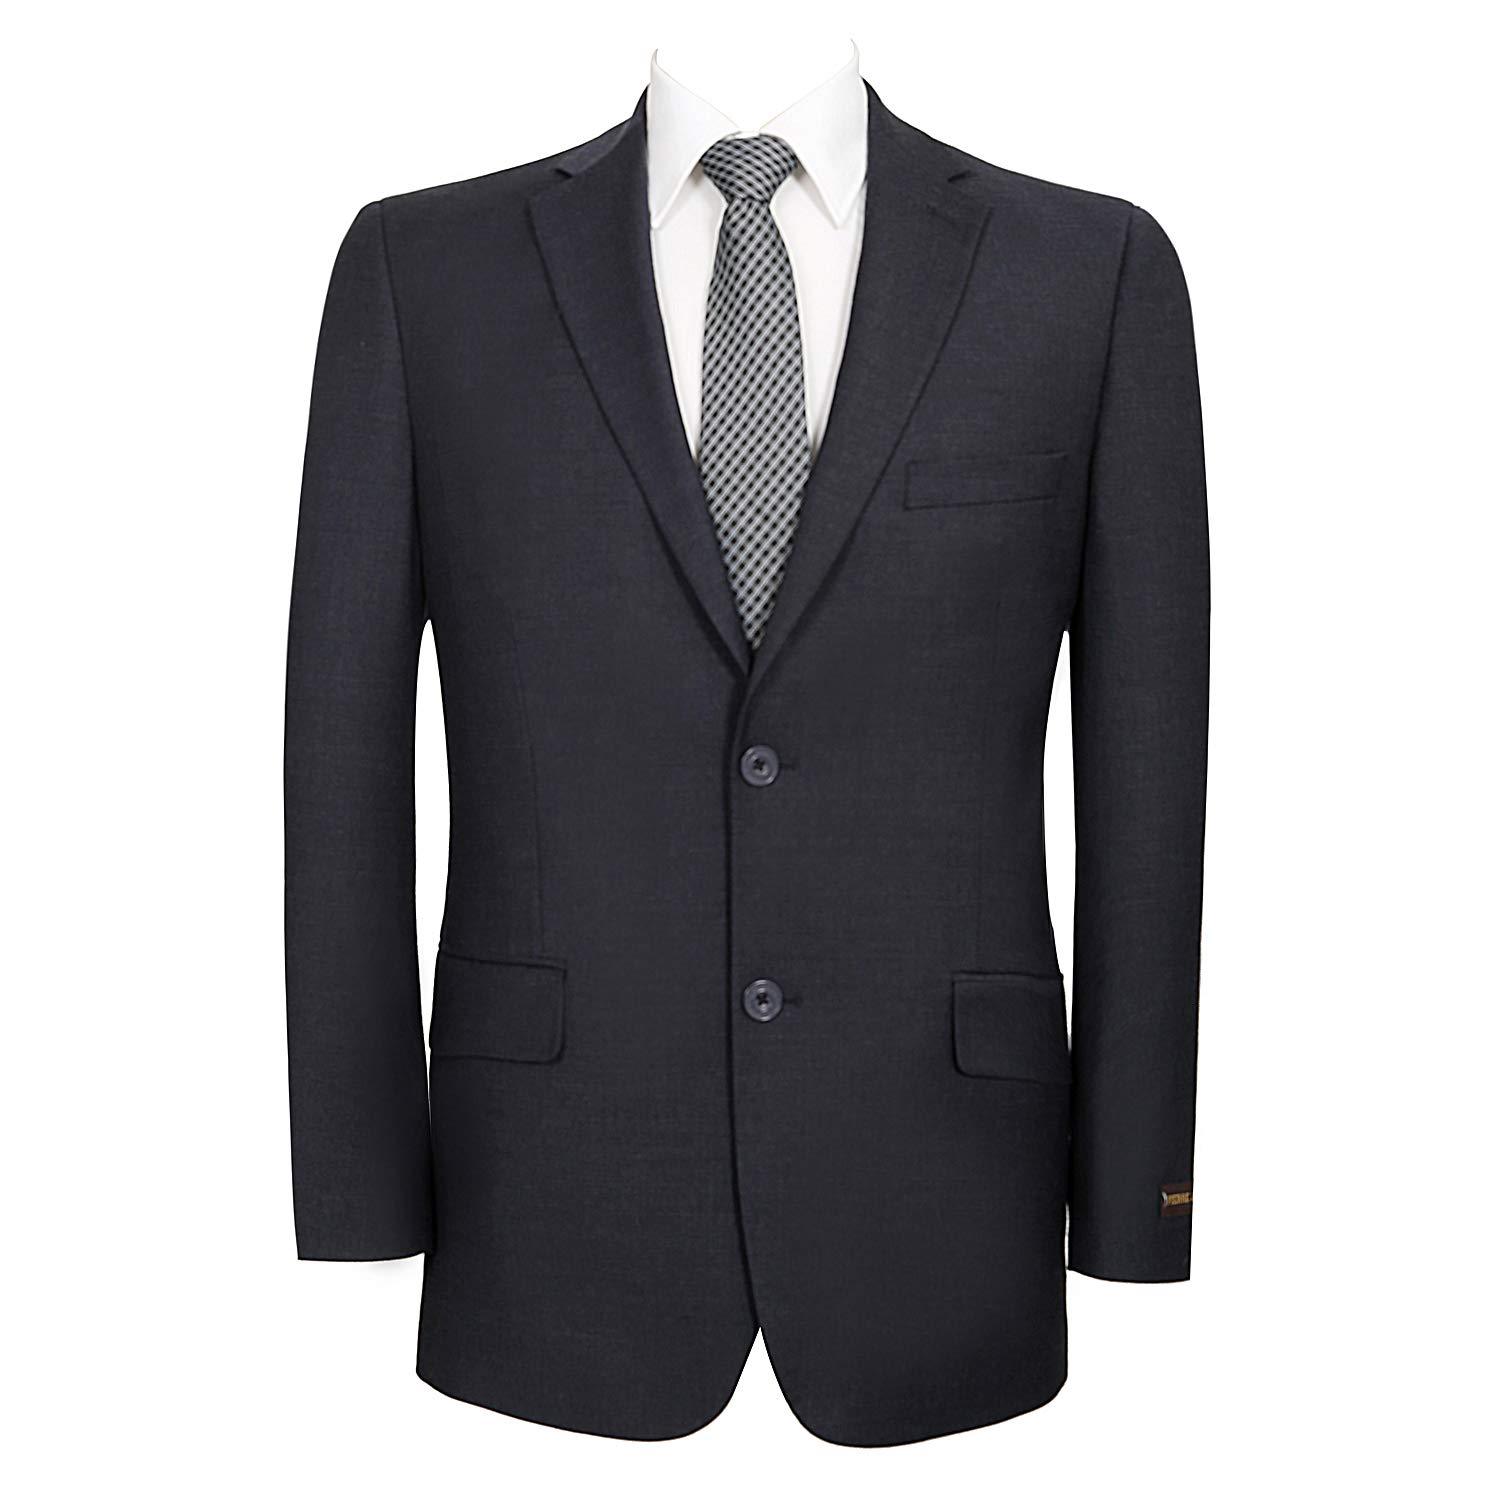 P&L Men's Premium Wool Blend Business Blazer Dress Suit Jacket Dark Blue by P&L